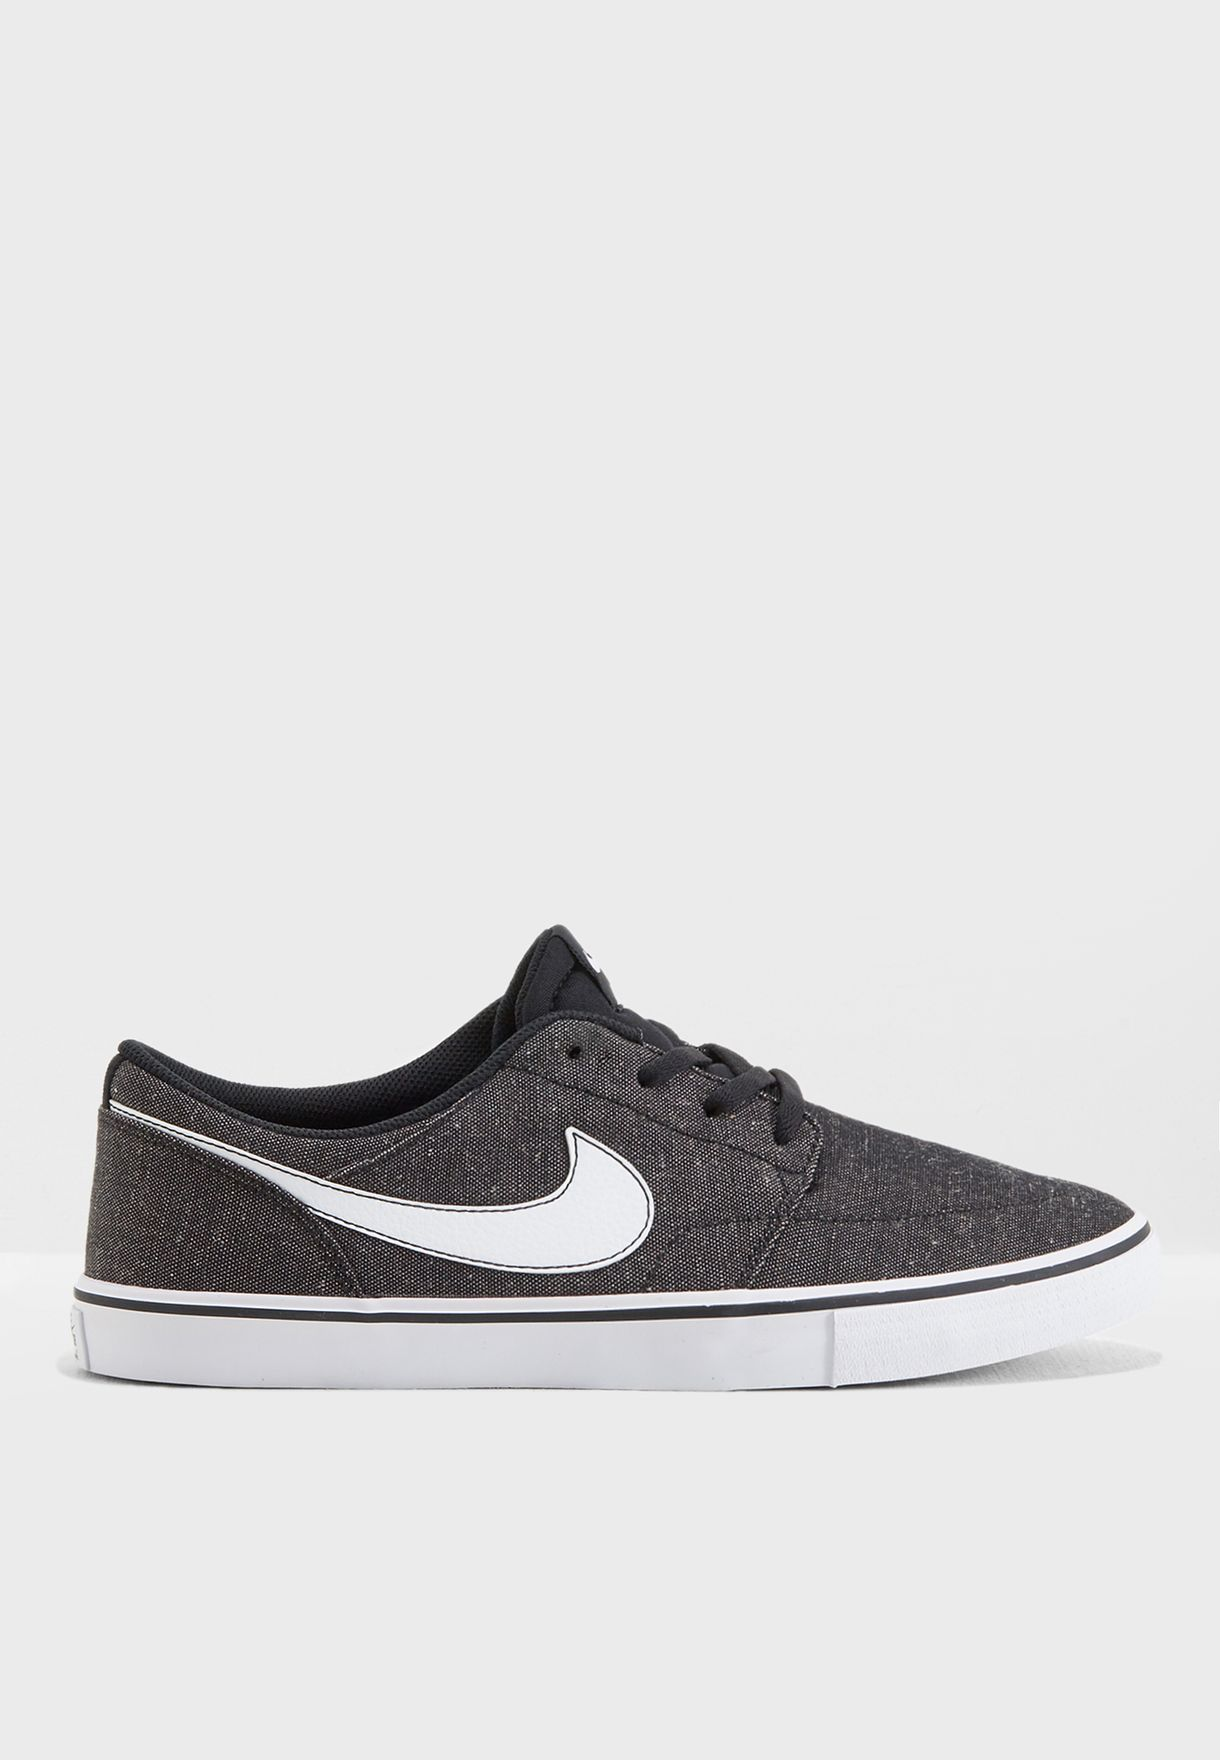 b7927ba8a3 Shop Nike black SB Portmore II SLR 880269-001 for Men in UAE ...